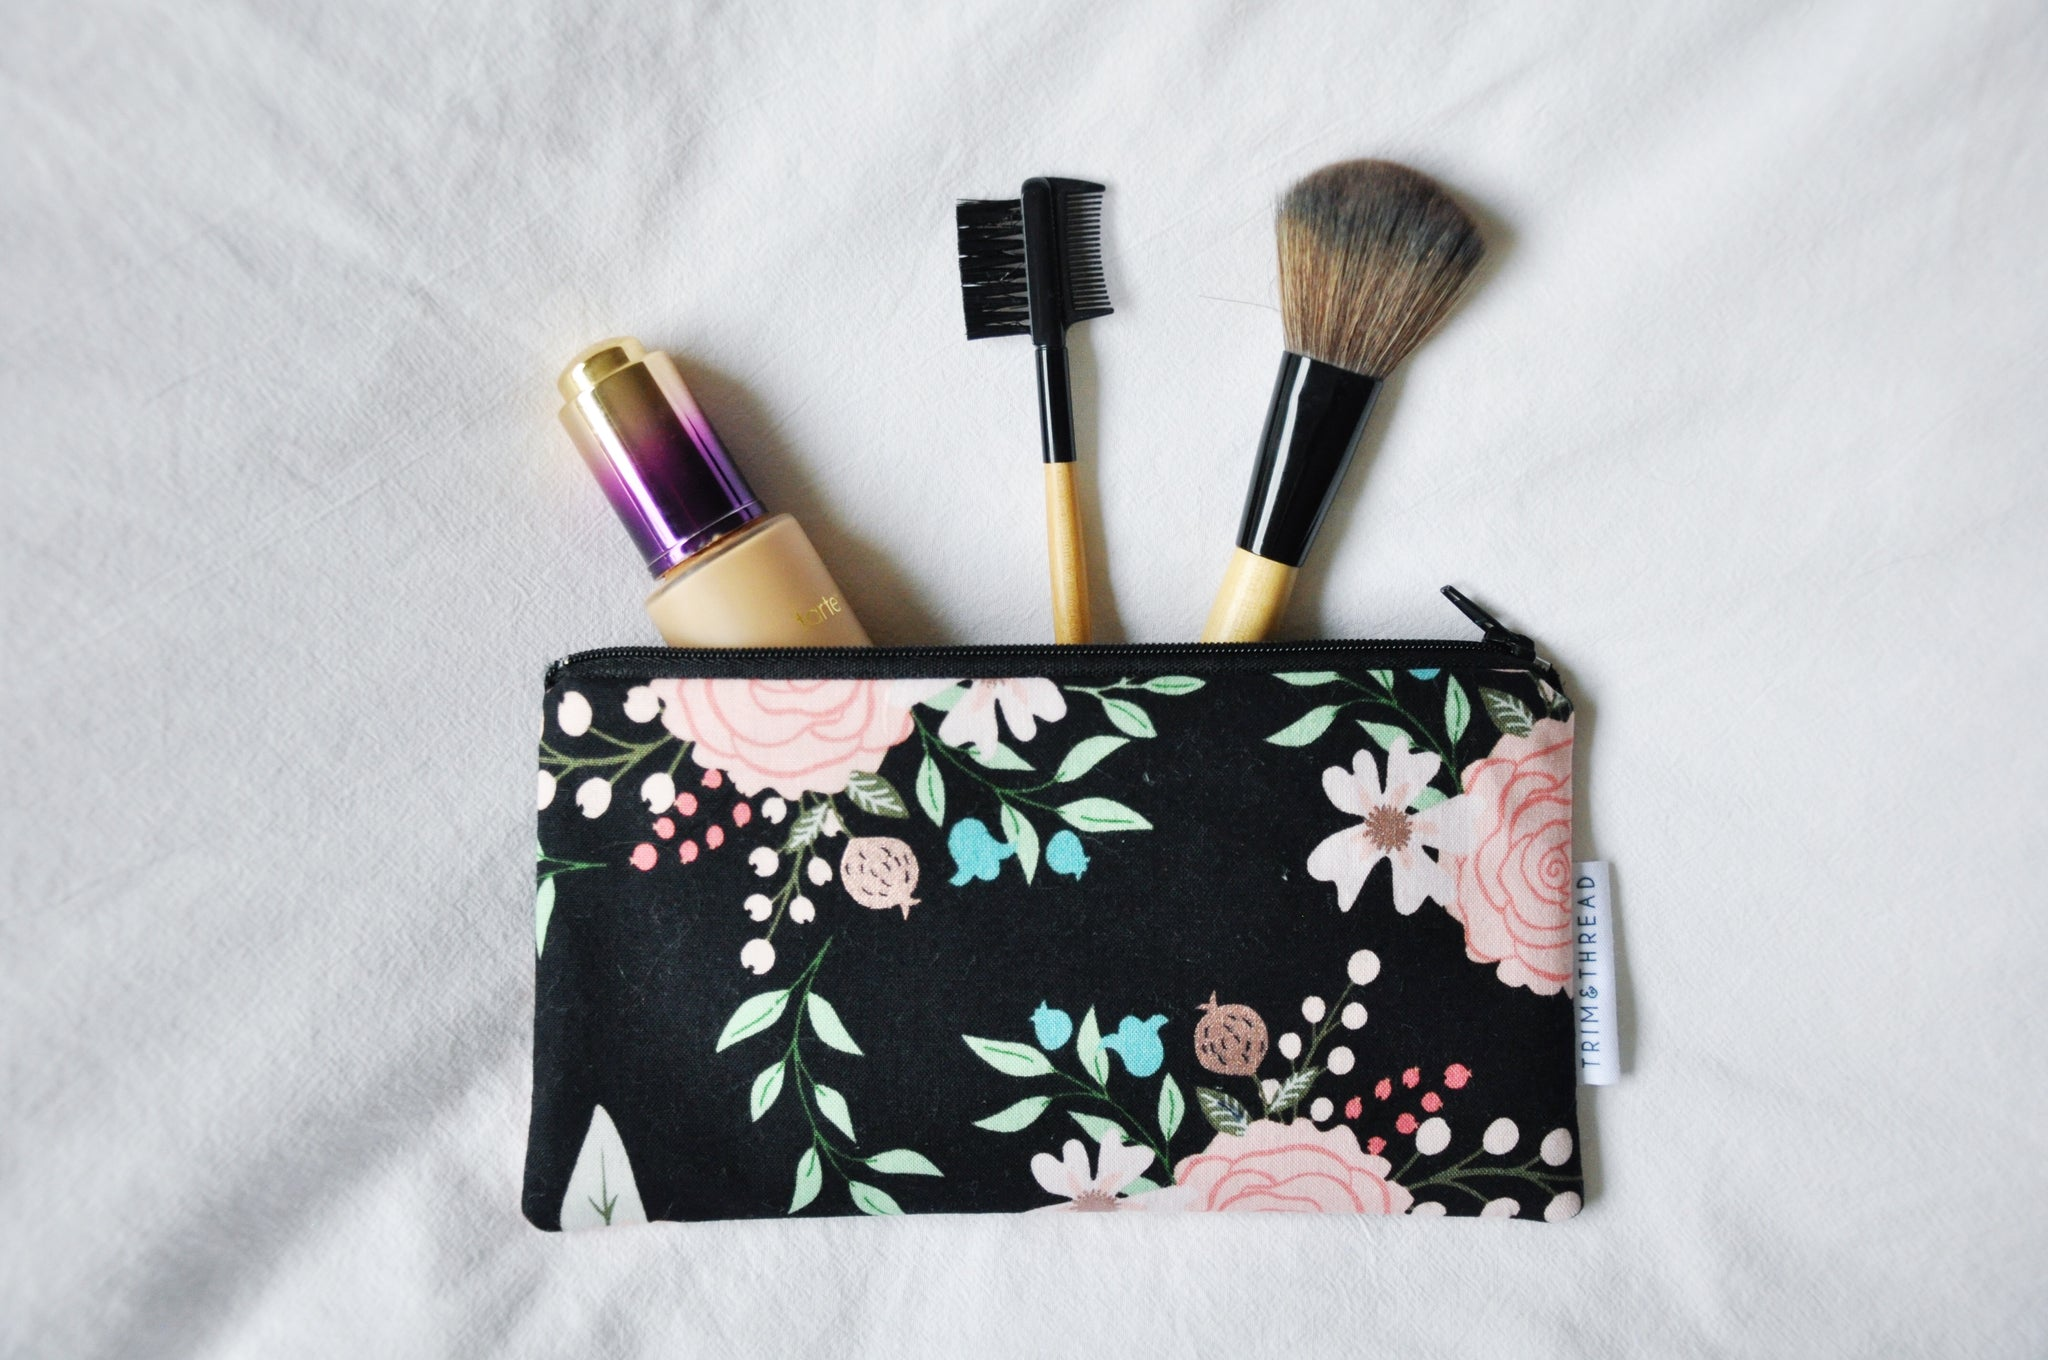 Bliss Black Floral Zipper Pouch